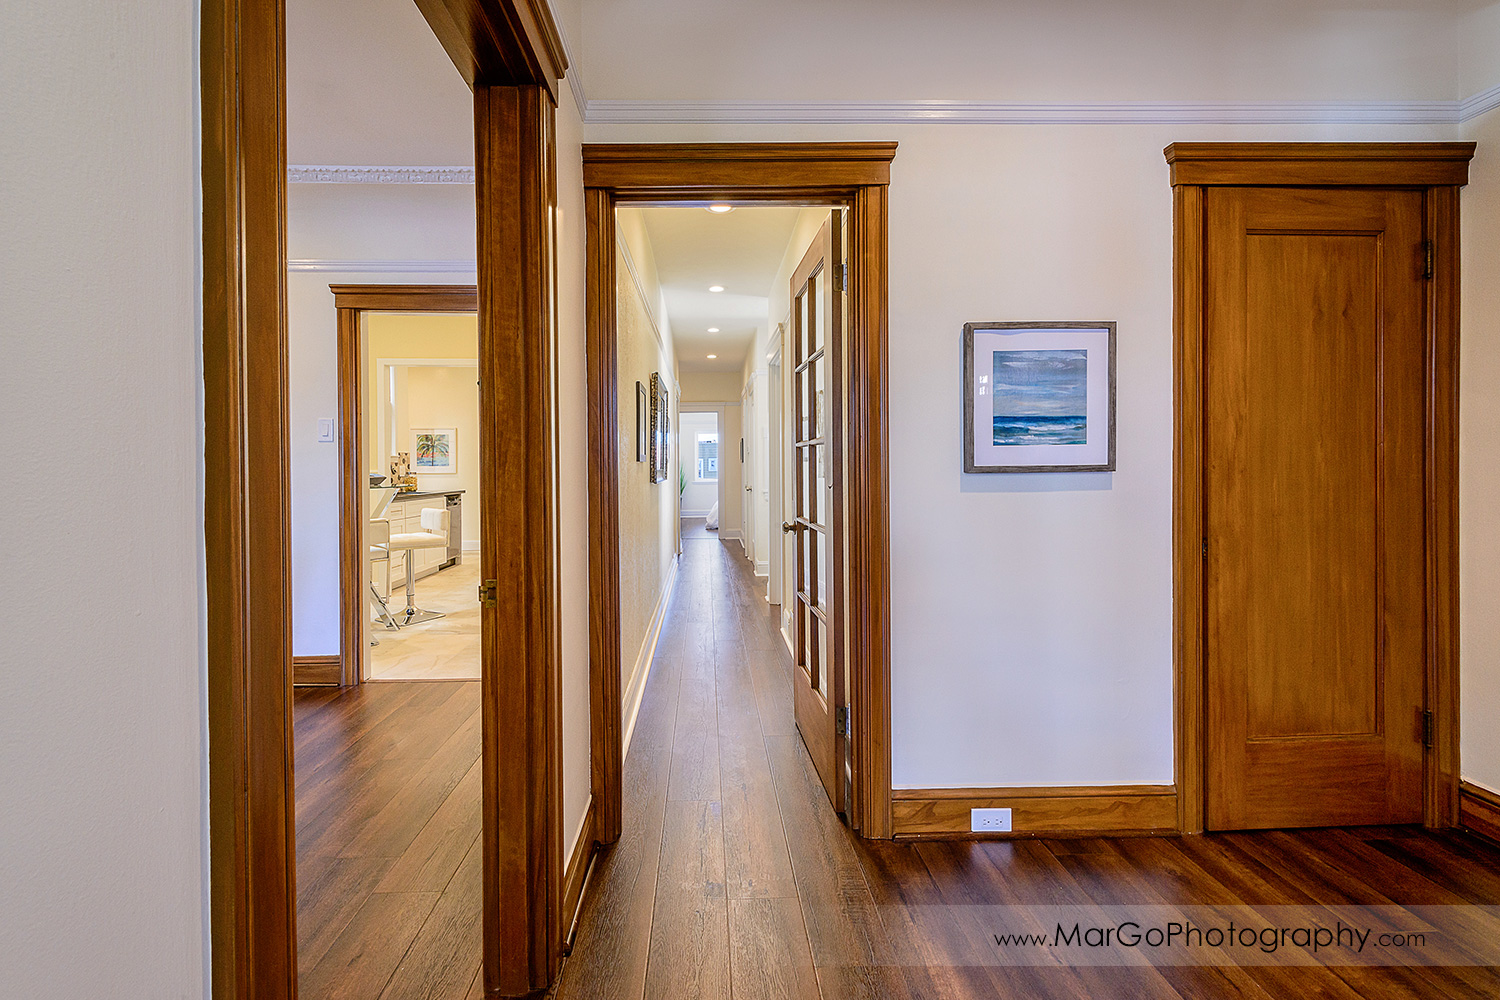 San Francisco house hall with wood doors and floor - real estate photography